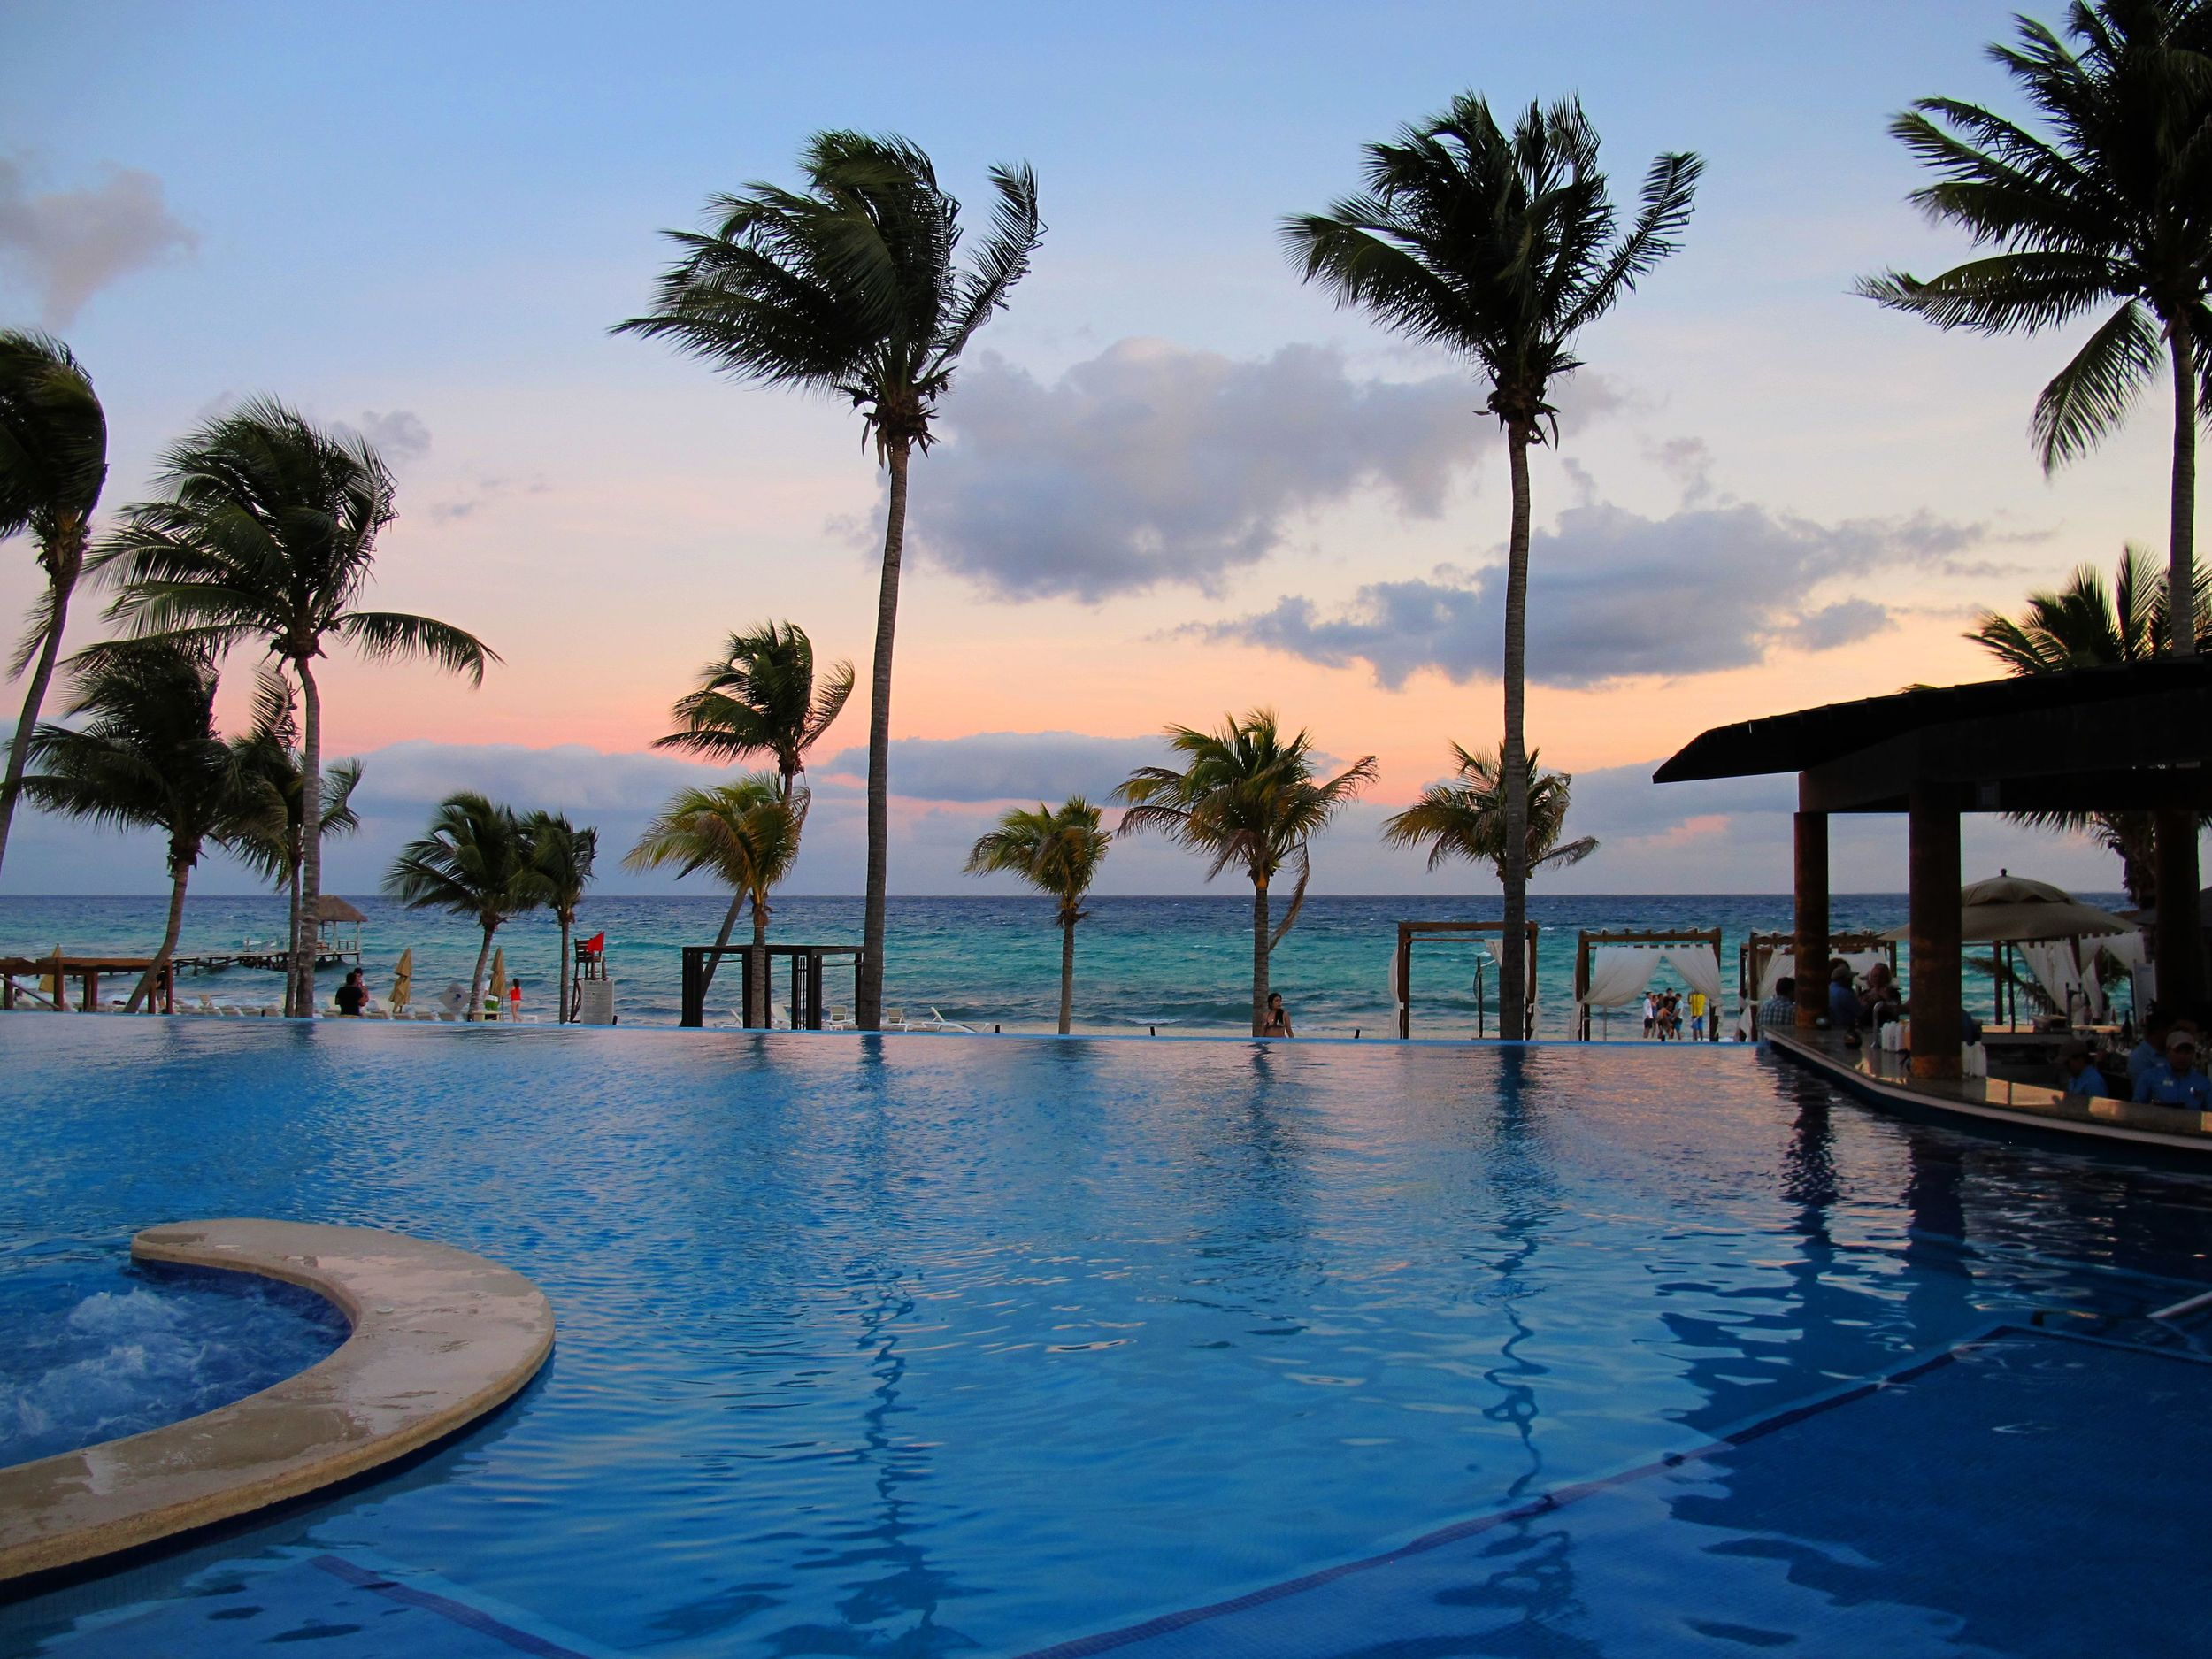 Luckily with this view in Playa del Carmen, Mexico, it didn't matter what I was drinking